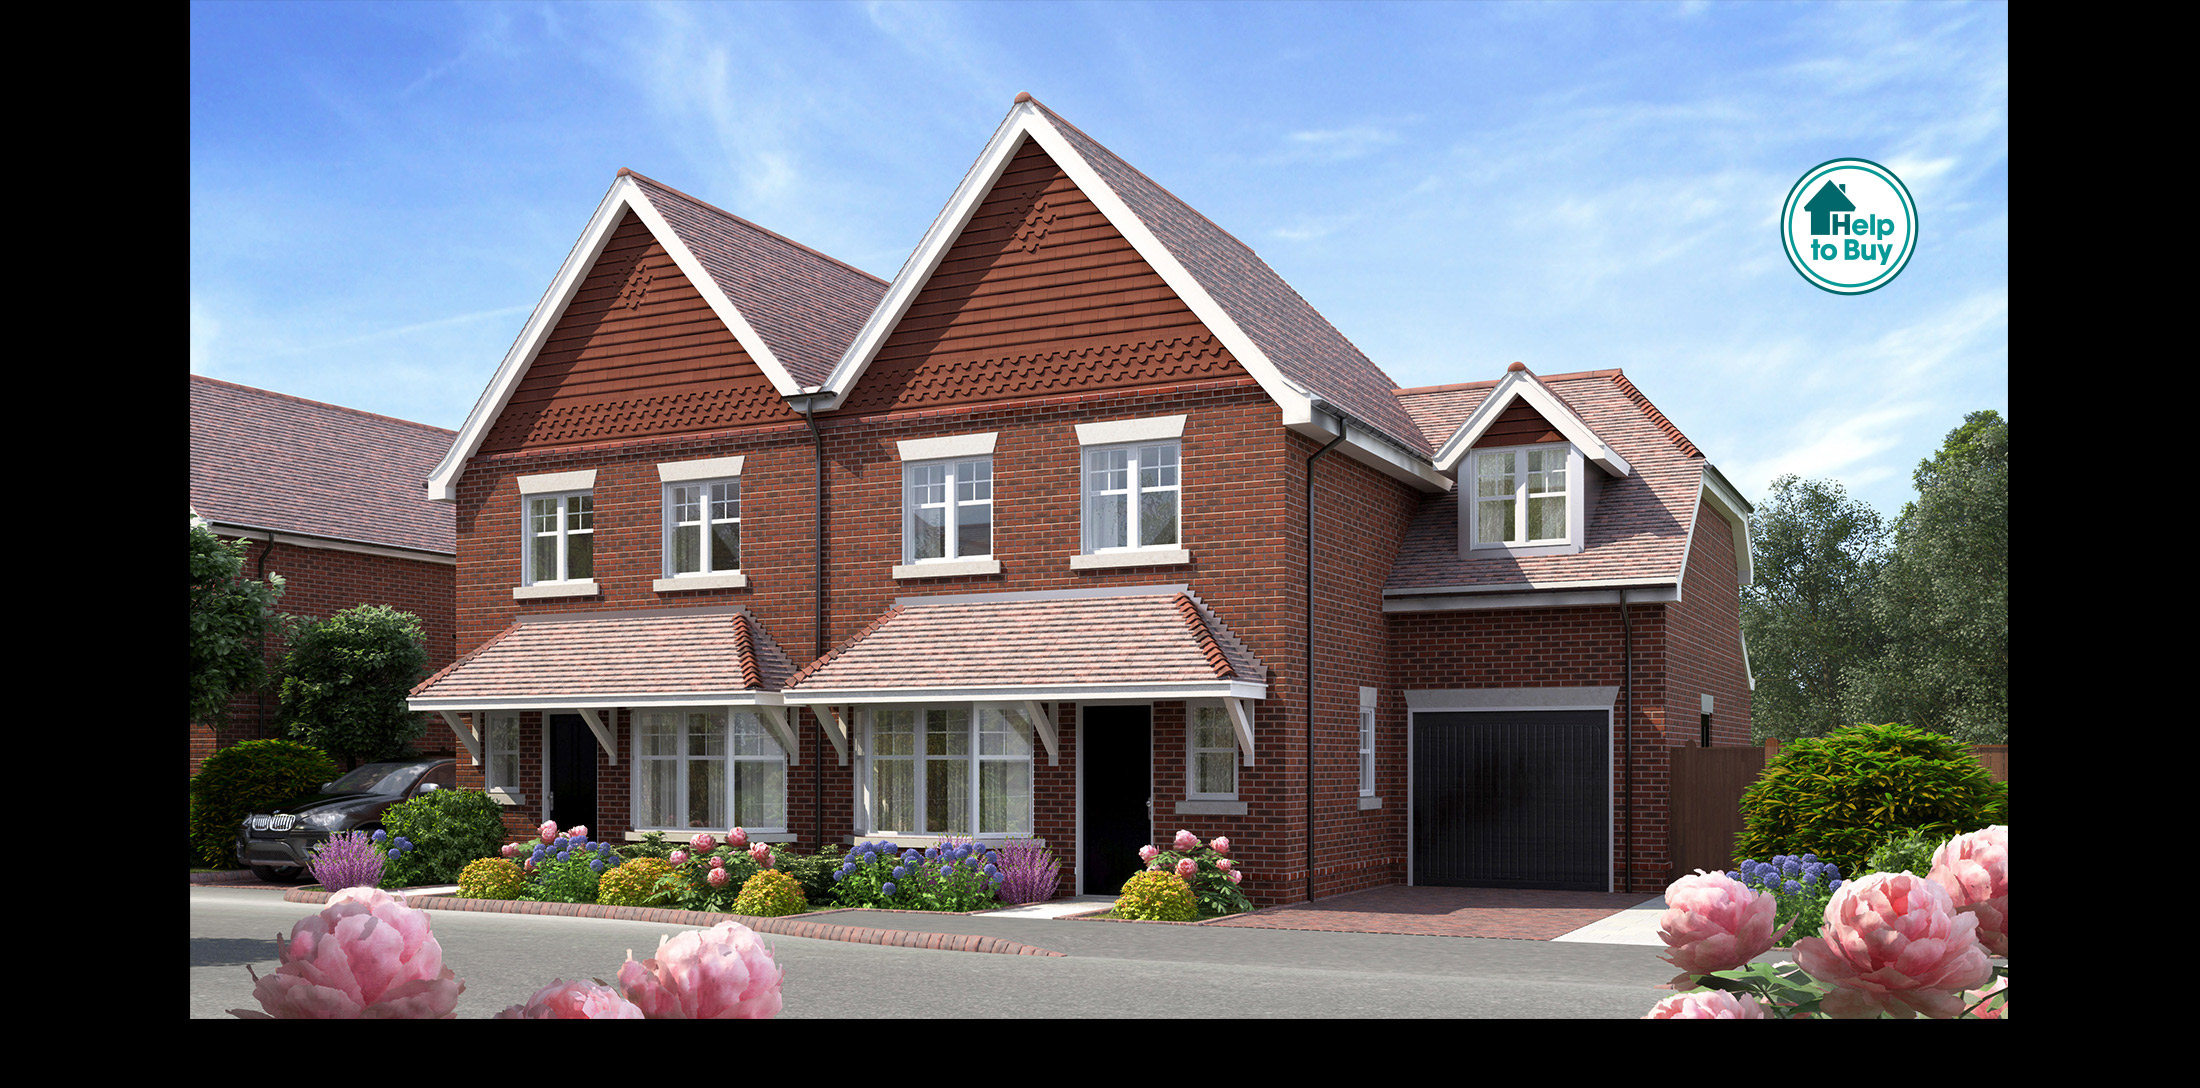 Alder grove new homes chilworth concept developments for New concept homes